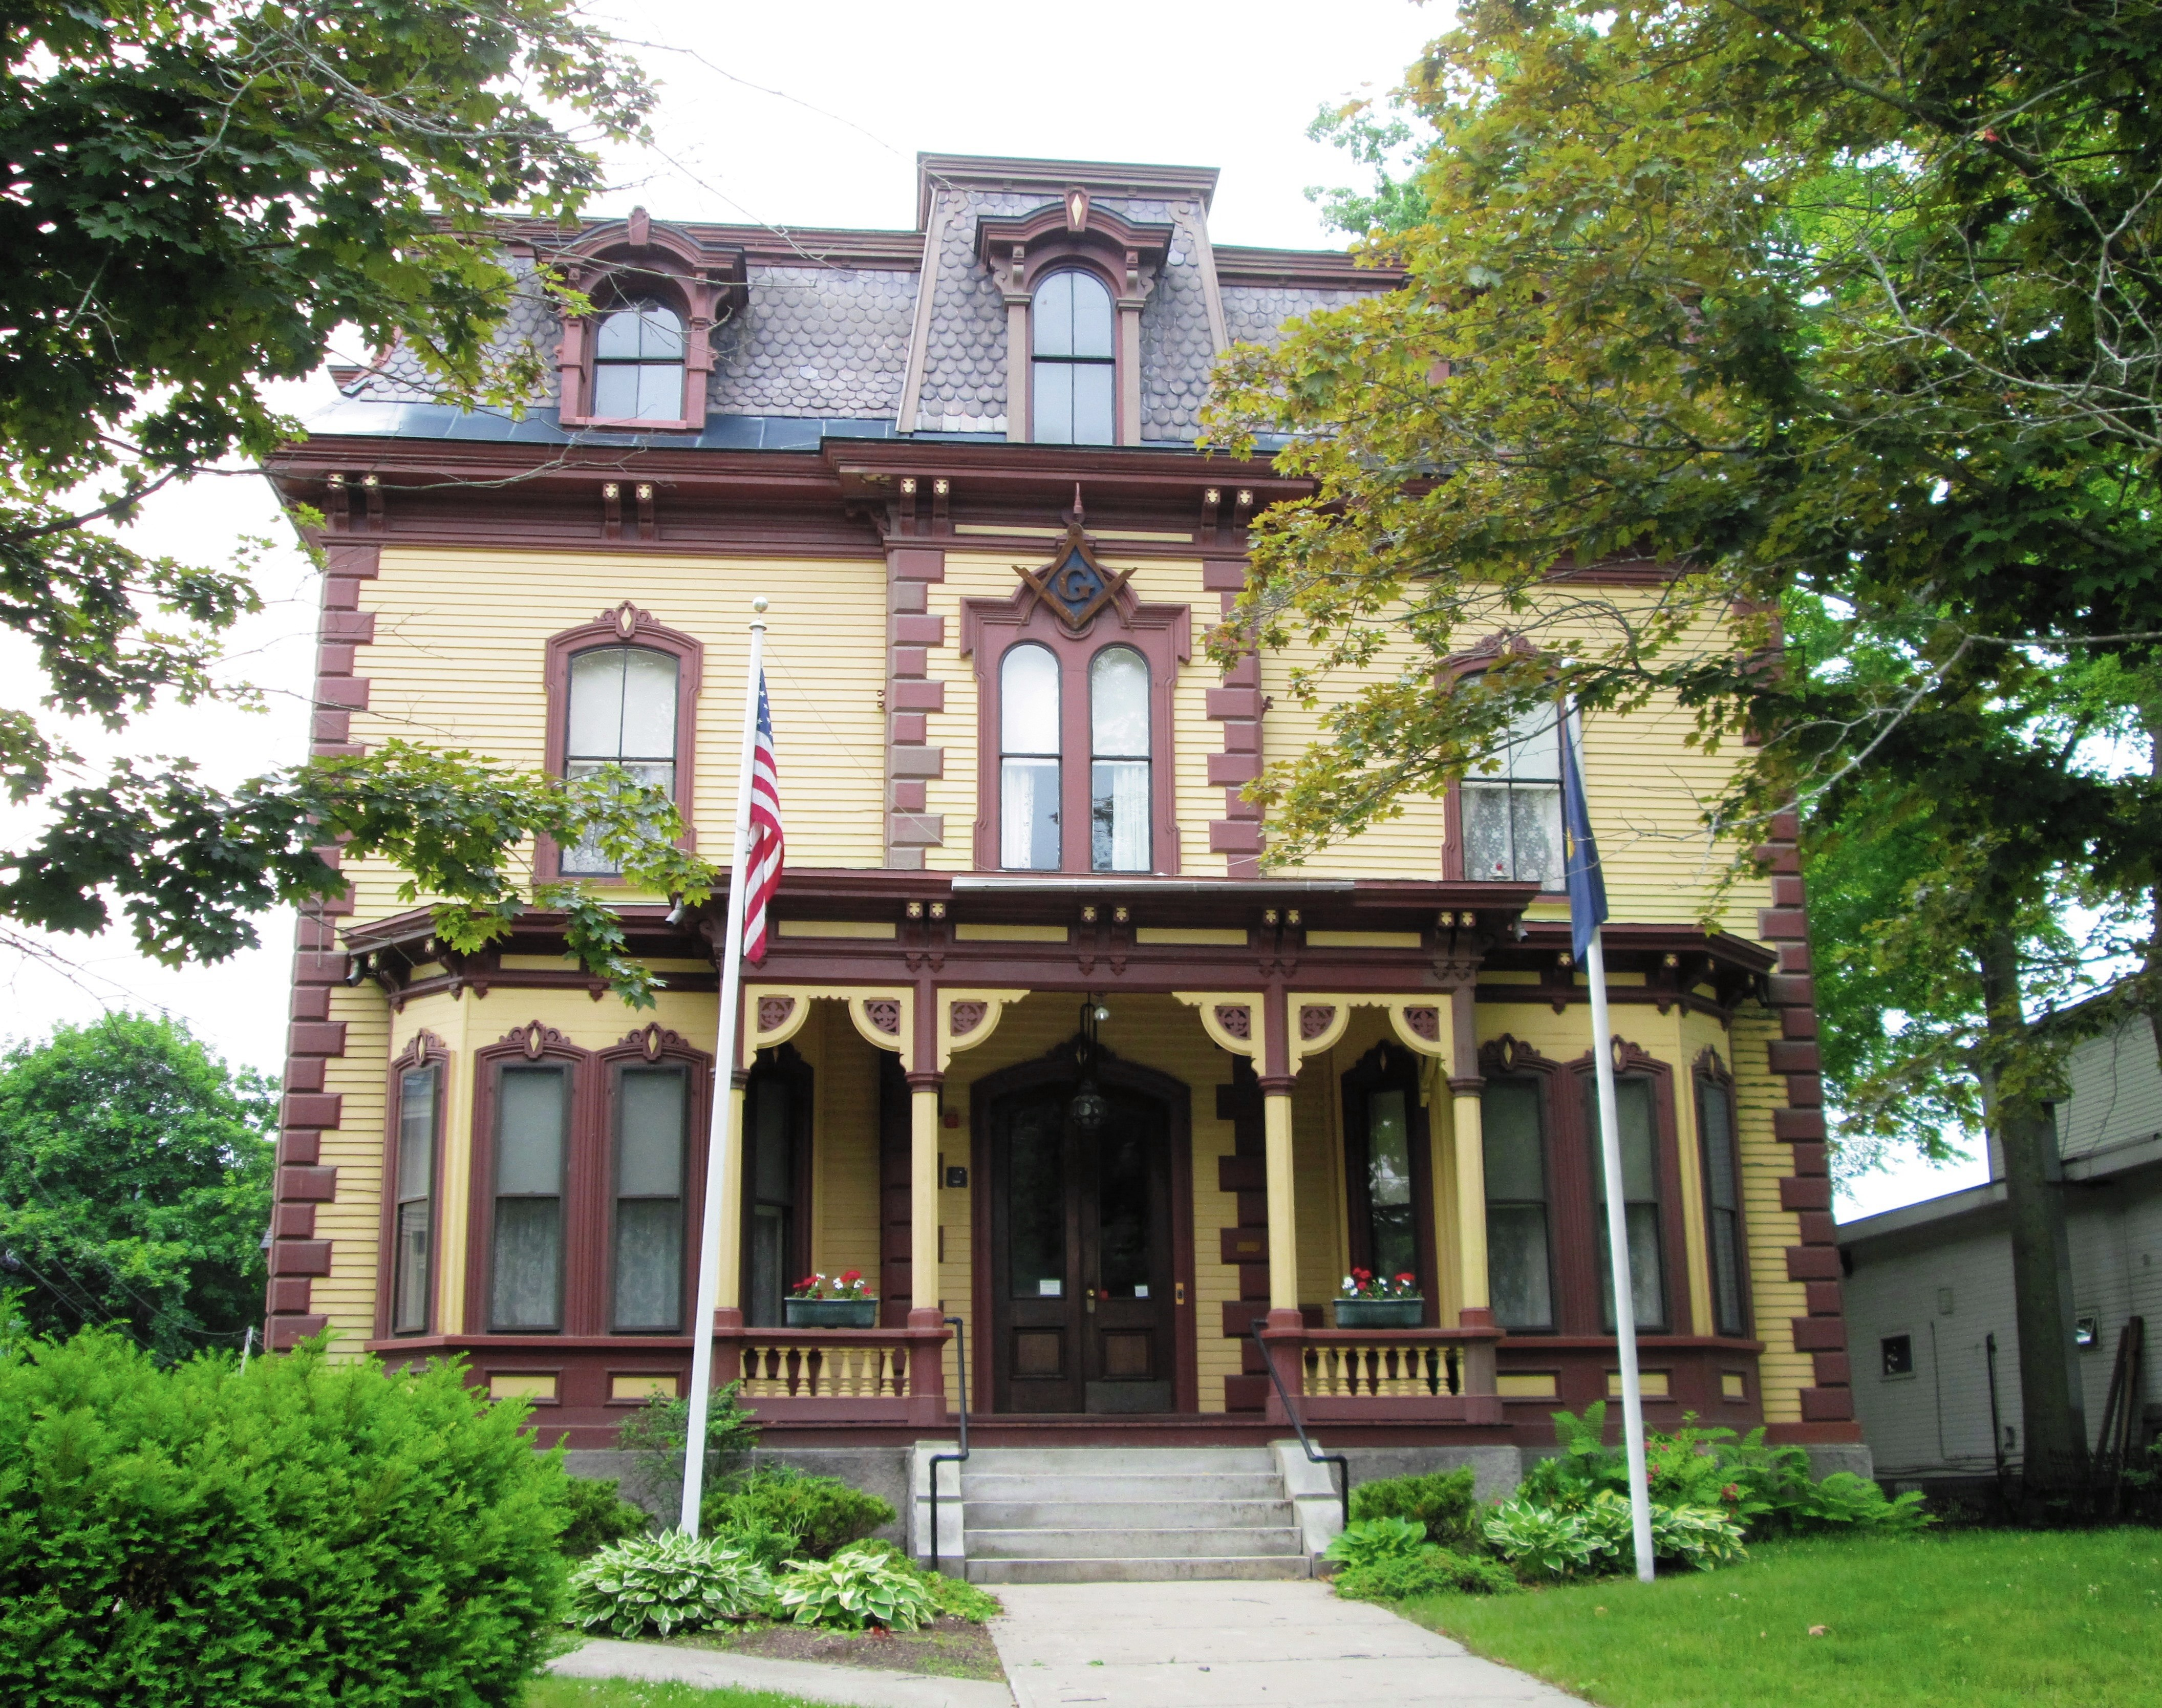 The Bellows Falls Masonic Temple Formerly Wyman Almira Flint House Was Built C 1870 In Second Empire Style